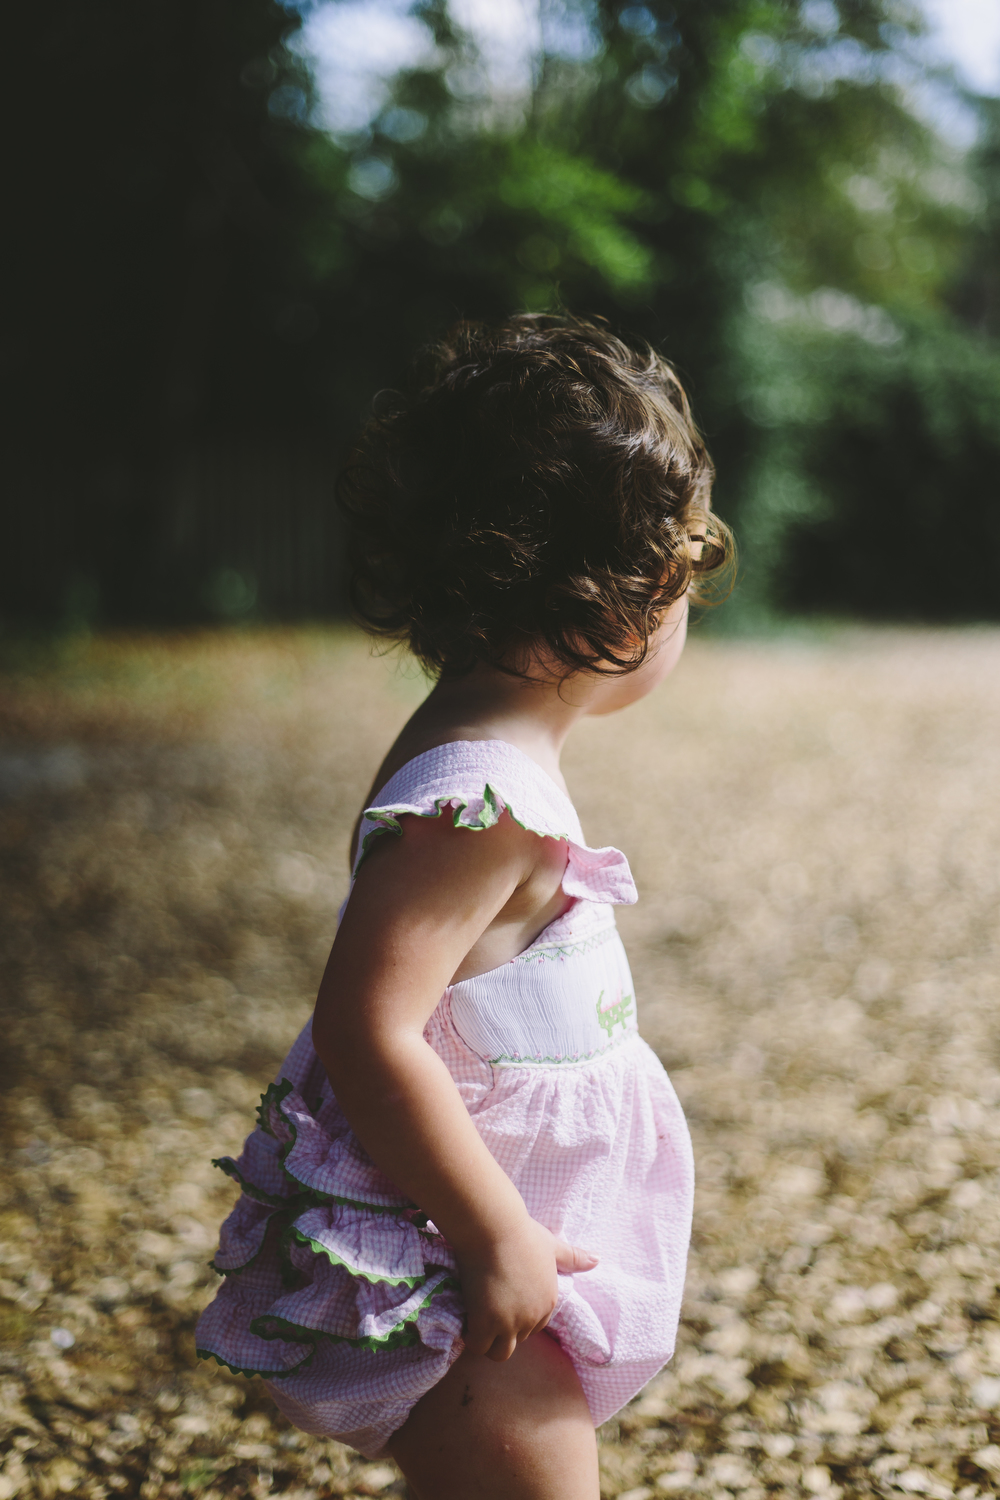 evie's curls at the park summer 2015.jpg